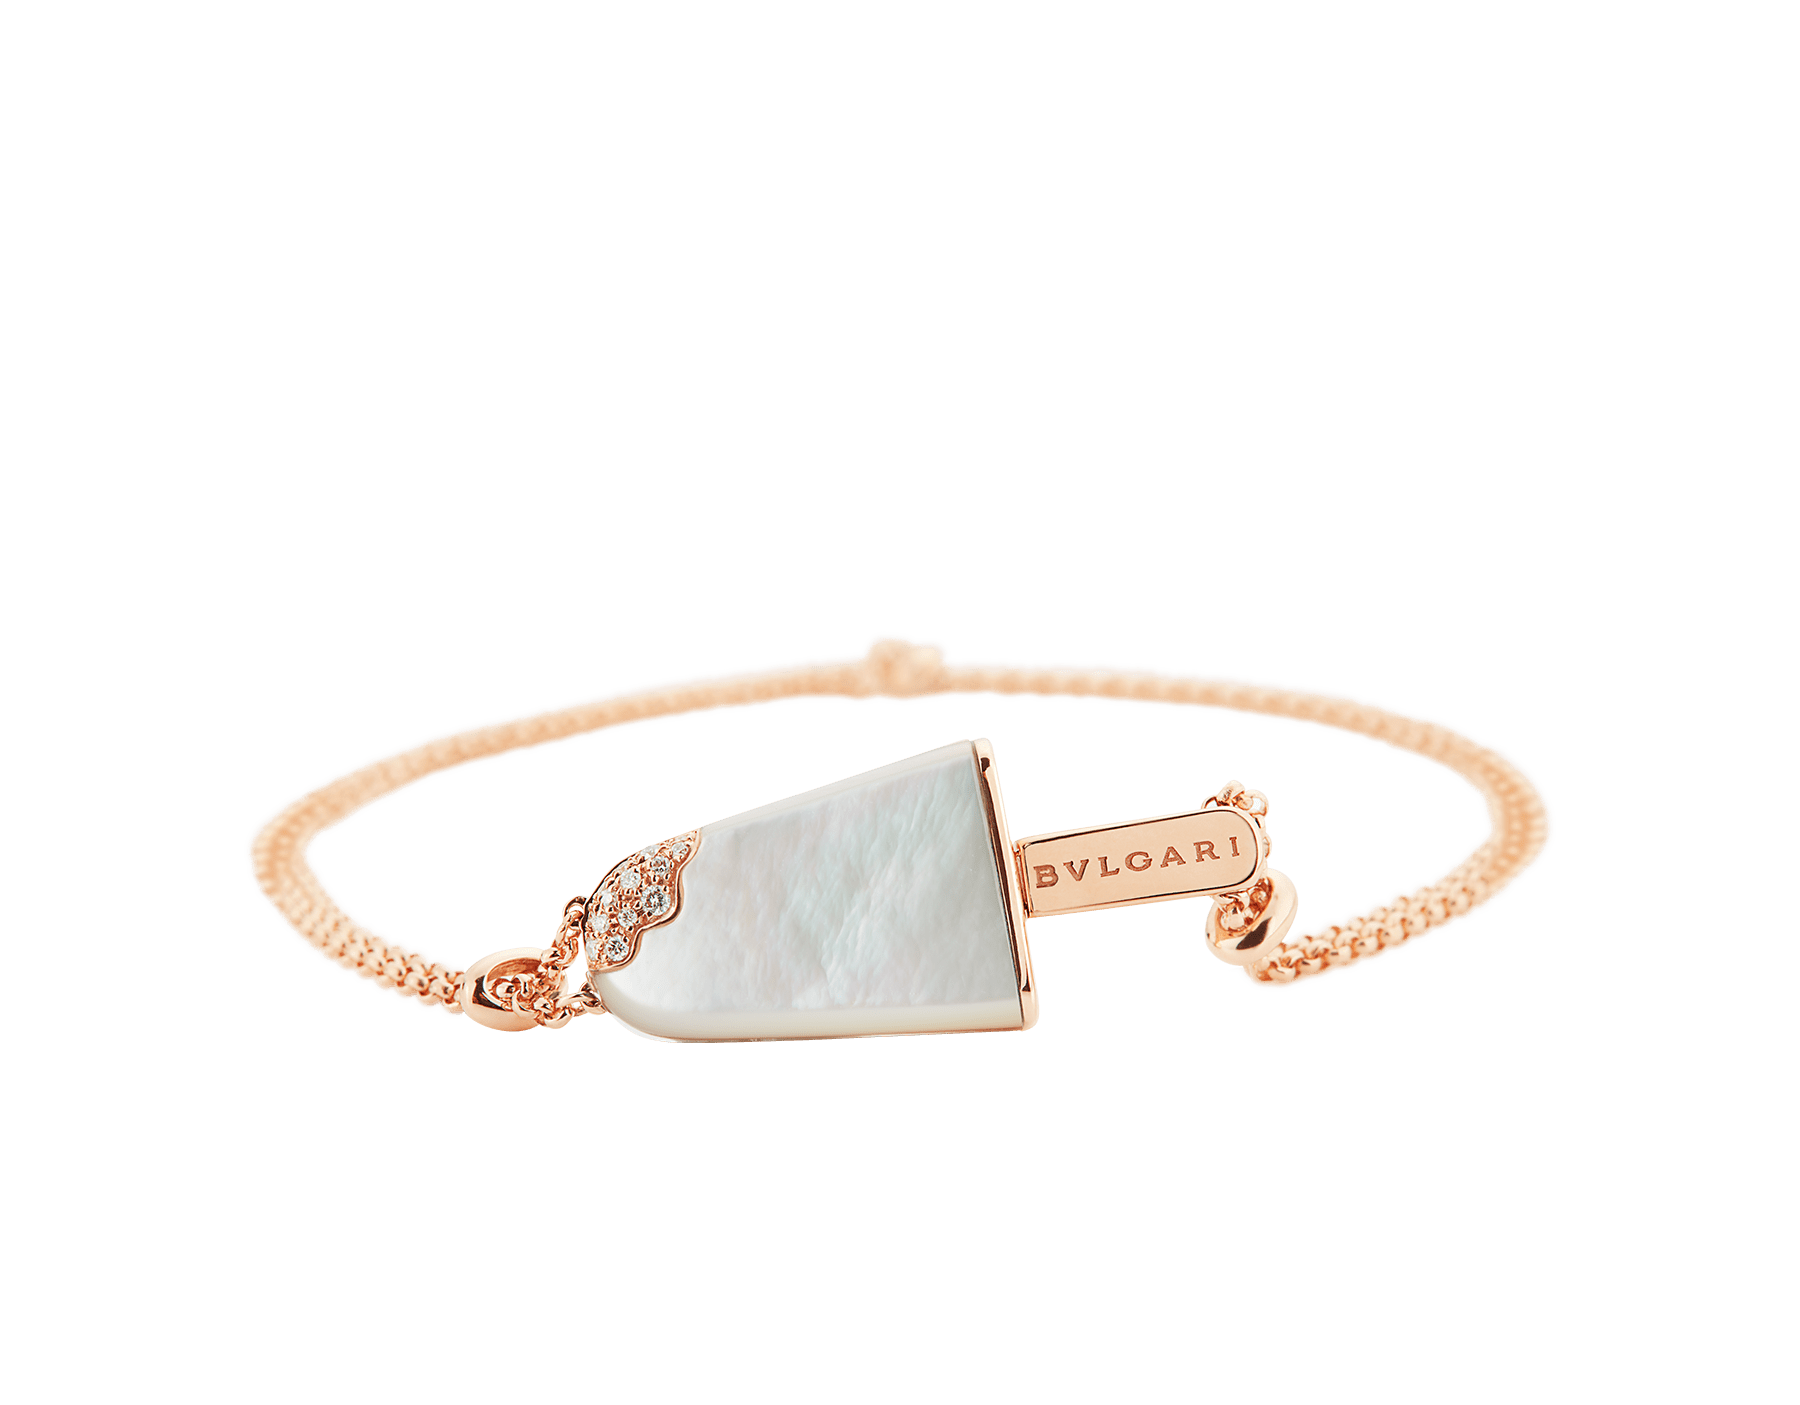 BVLGARI BVLGARI Gelati 18 kt rose gold soft bracelet set with mother-of-pearl and pavé diamonds BR858011 image 3